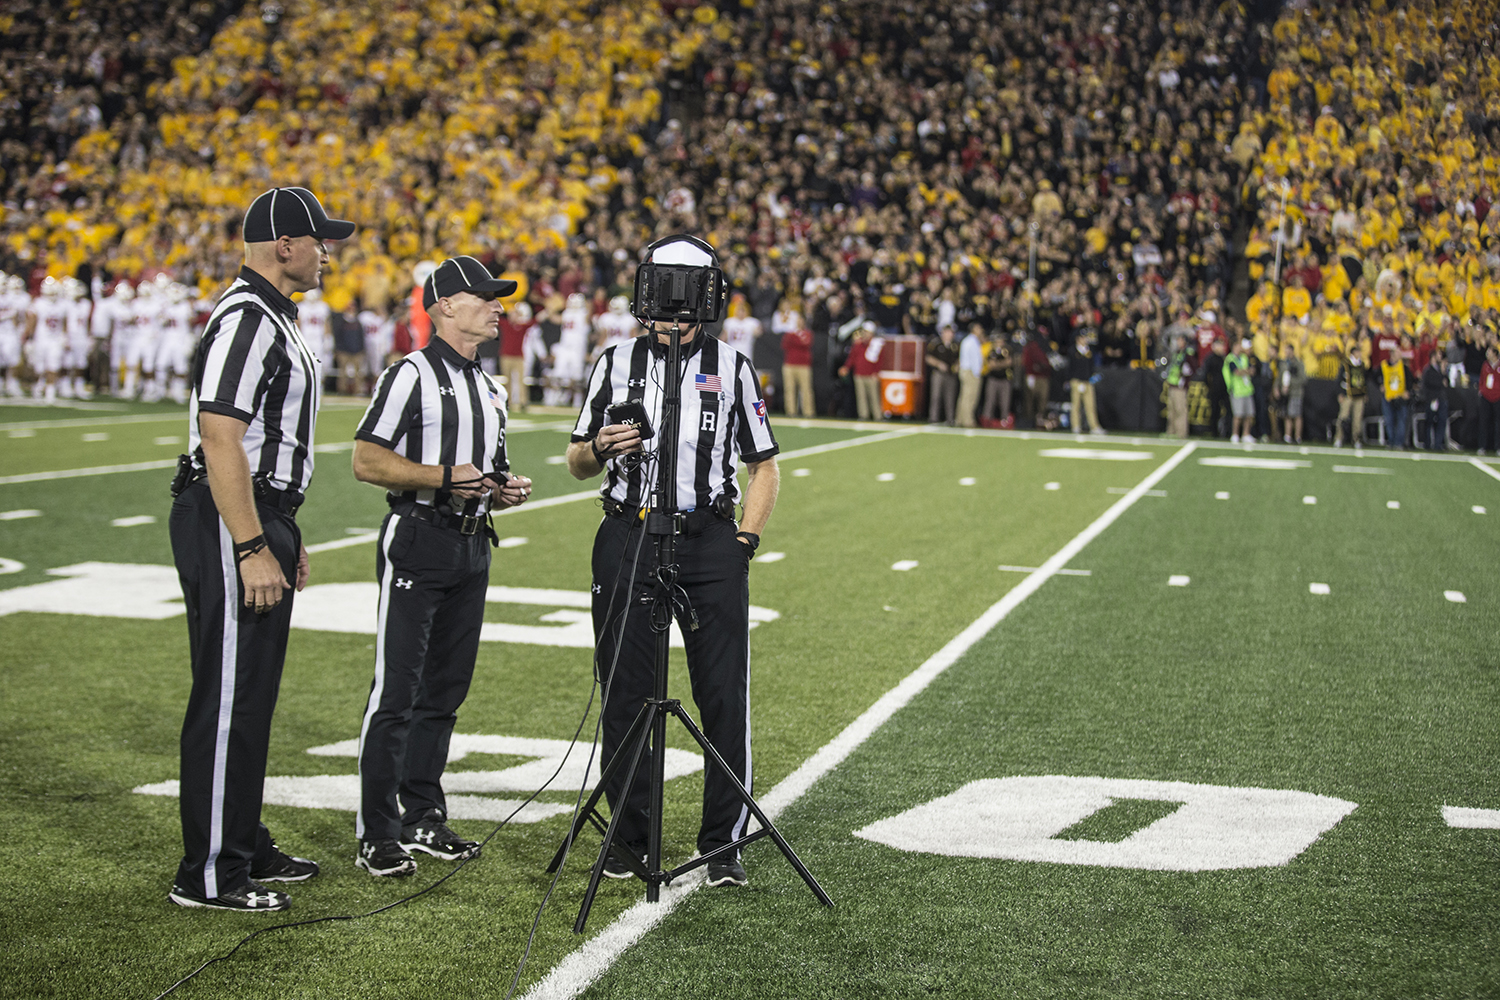 Referees perform a video review after Iowa punt returner Kyle Groenwing fumbled during a return during a football game between Iowa and Wisconsin on Saturday, September 22, 2018. The Badgers defeated the Hawkeyes, 28-17.